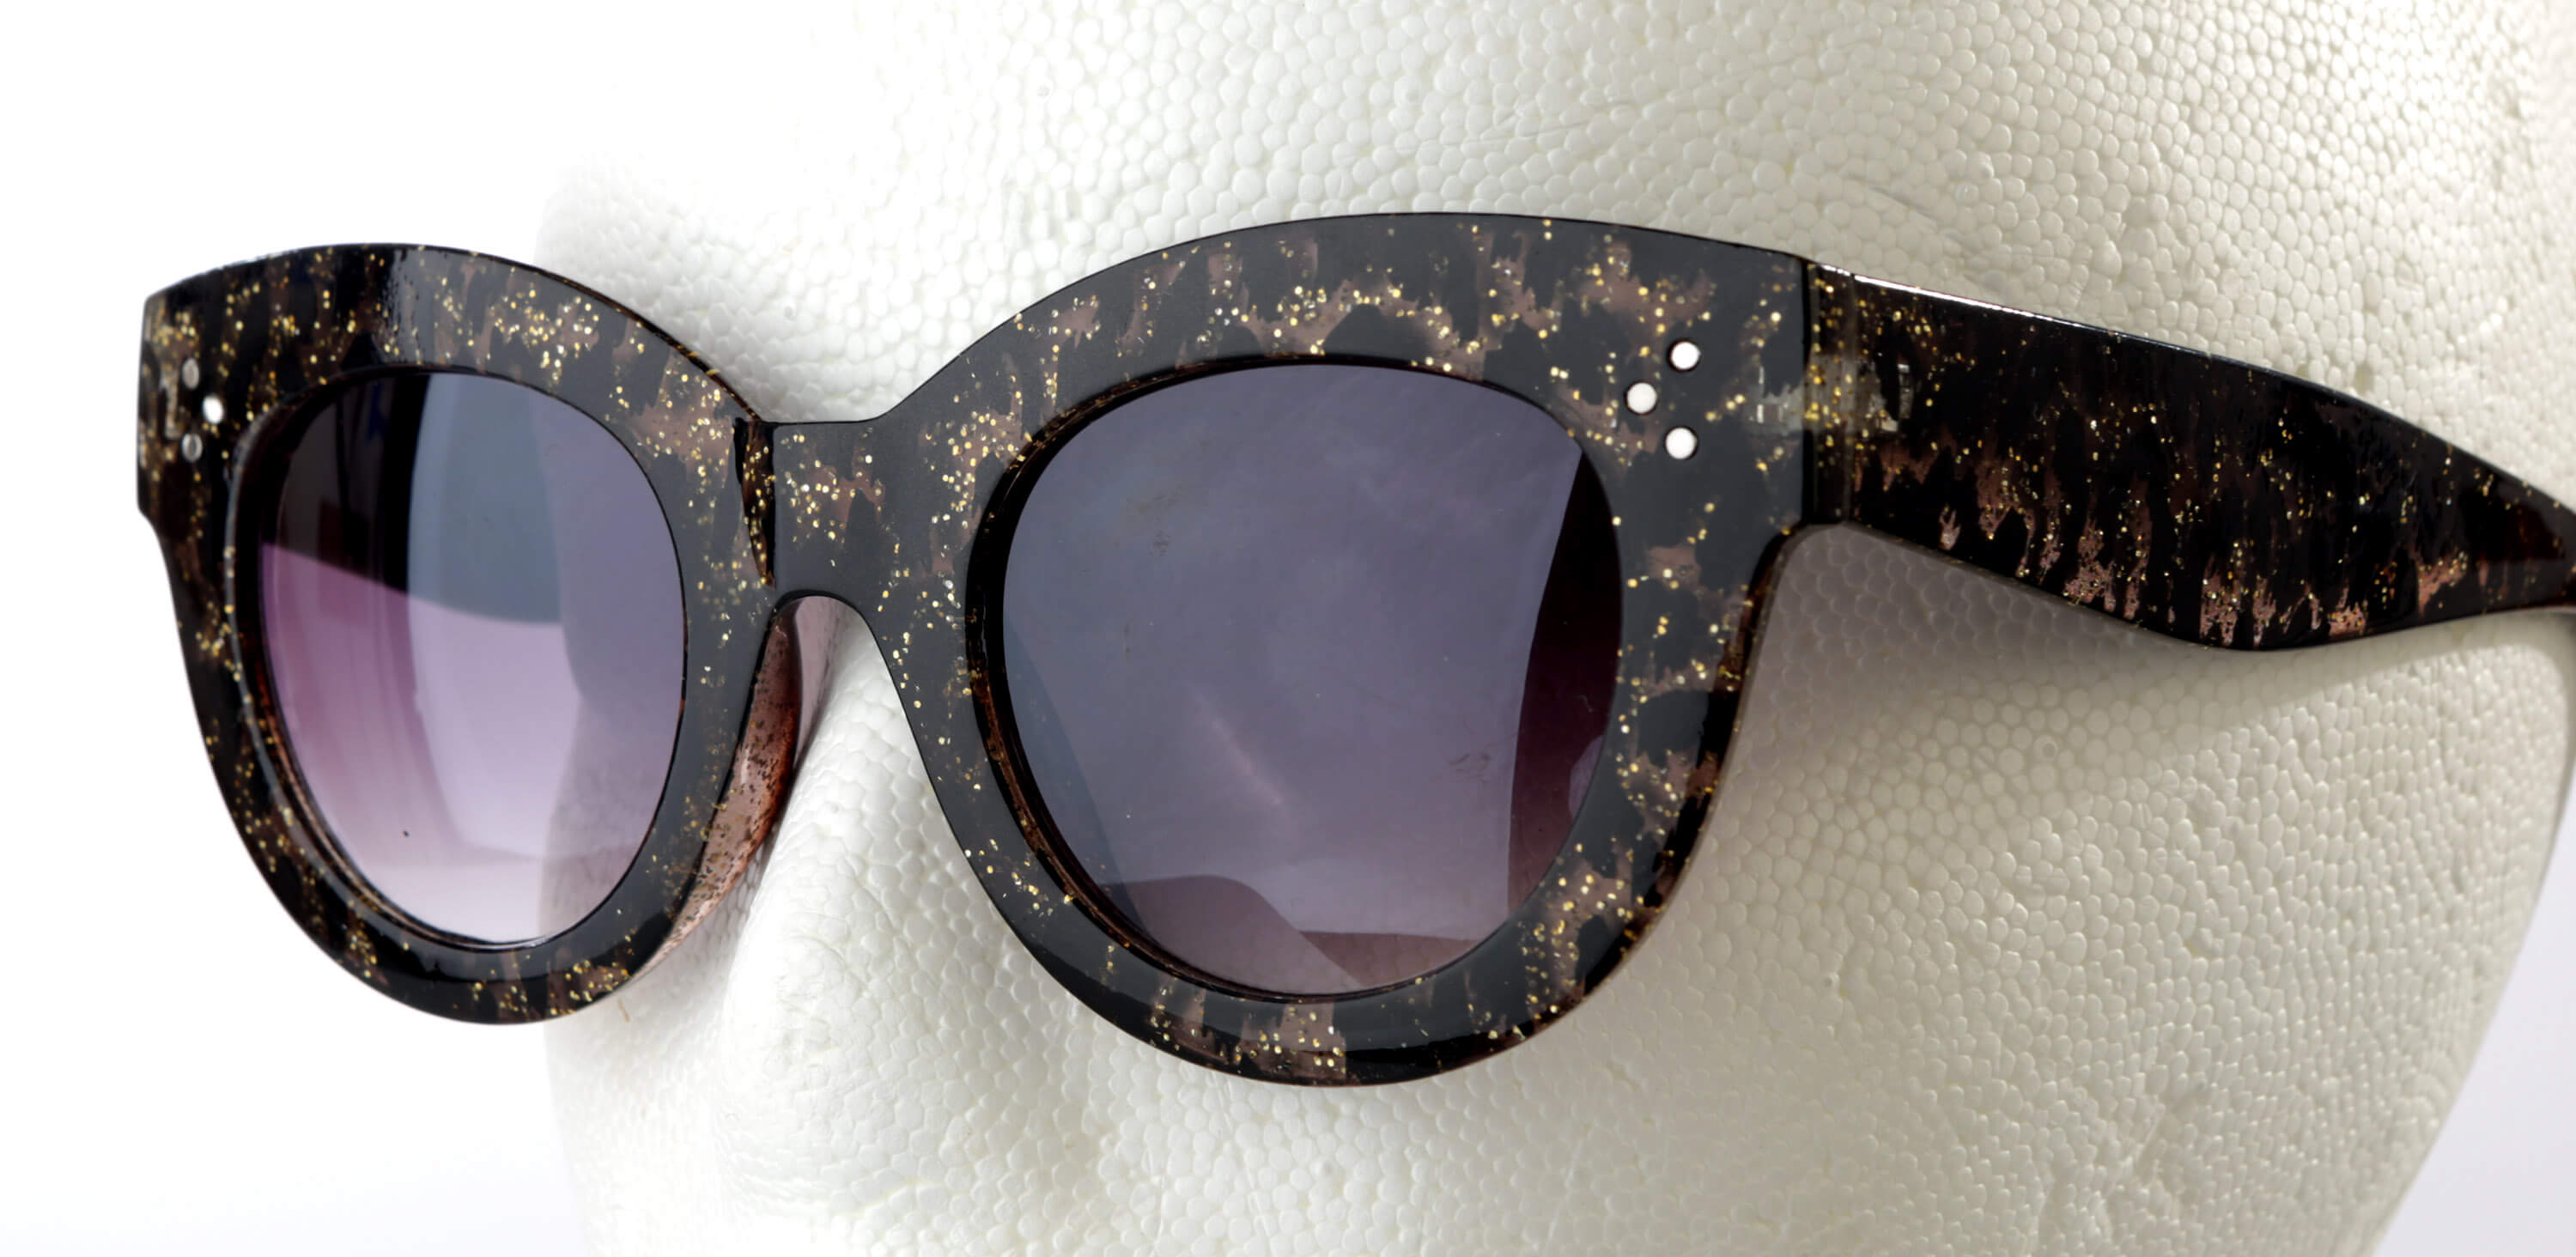 e1605ba105 Animal print sunglasses